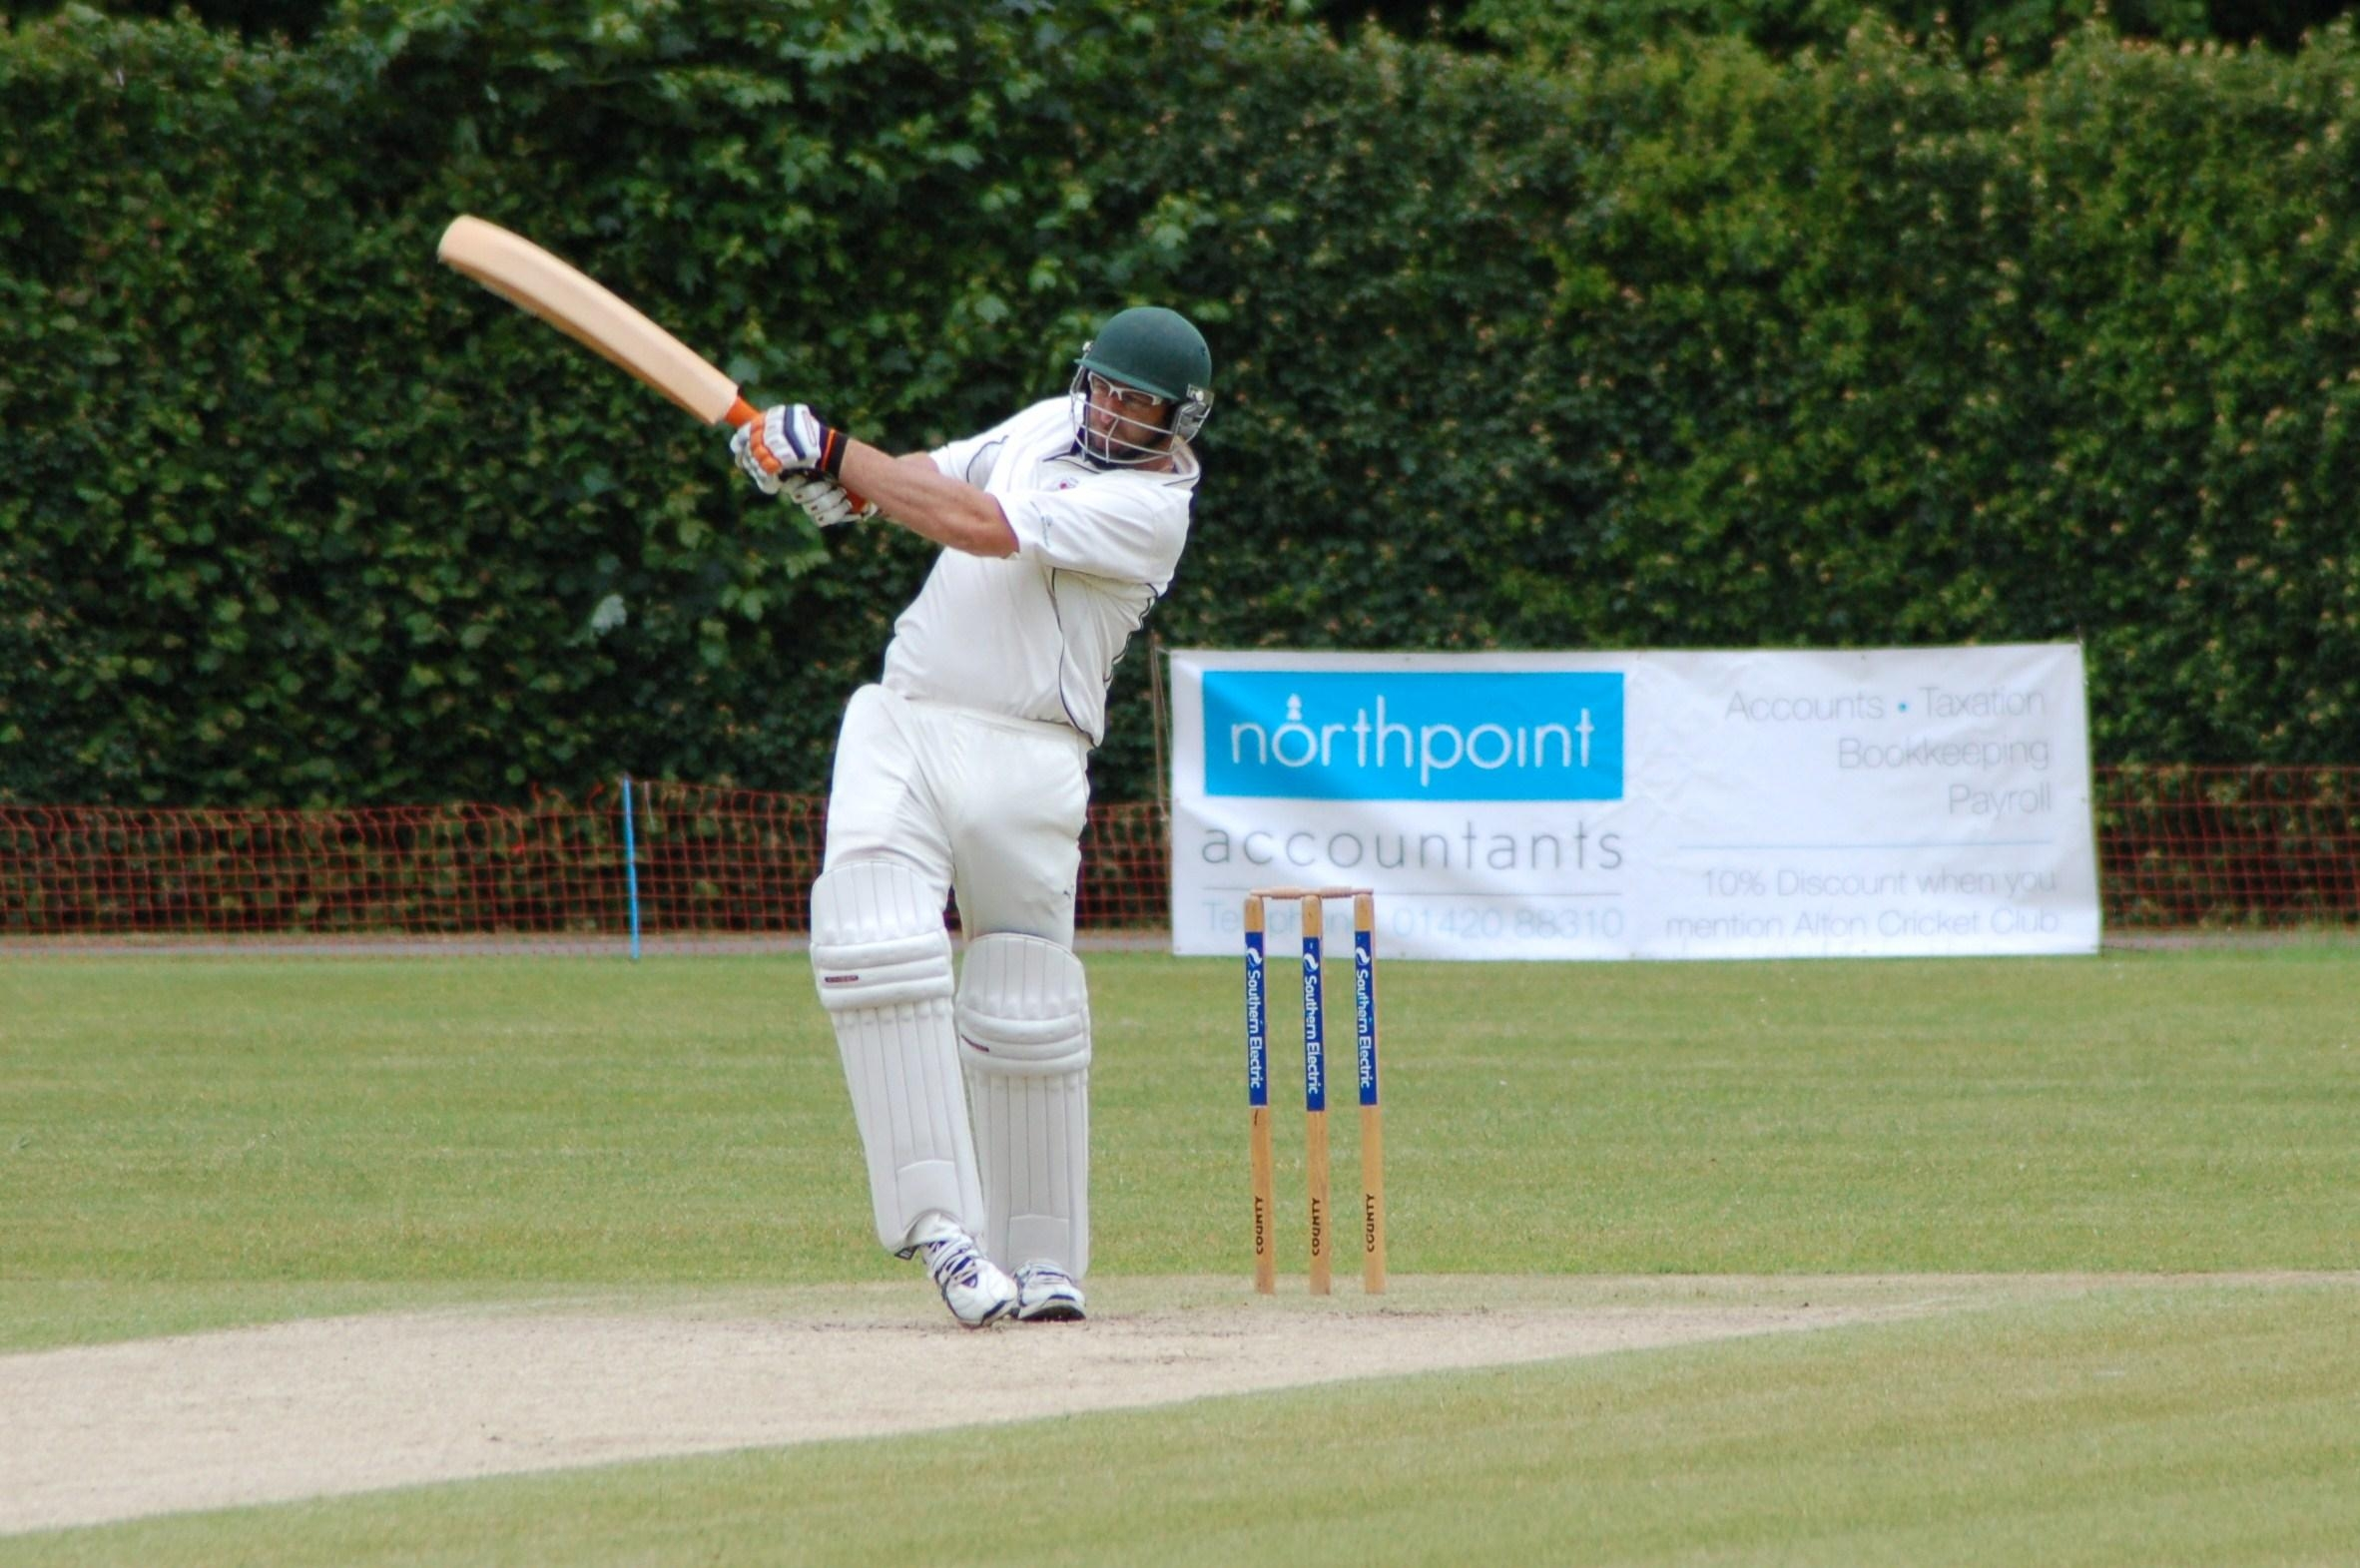 David Taylor took the Fawley bowling apart on Saturday